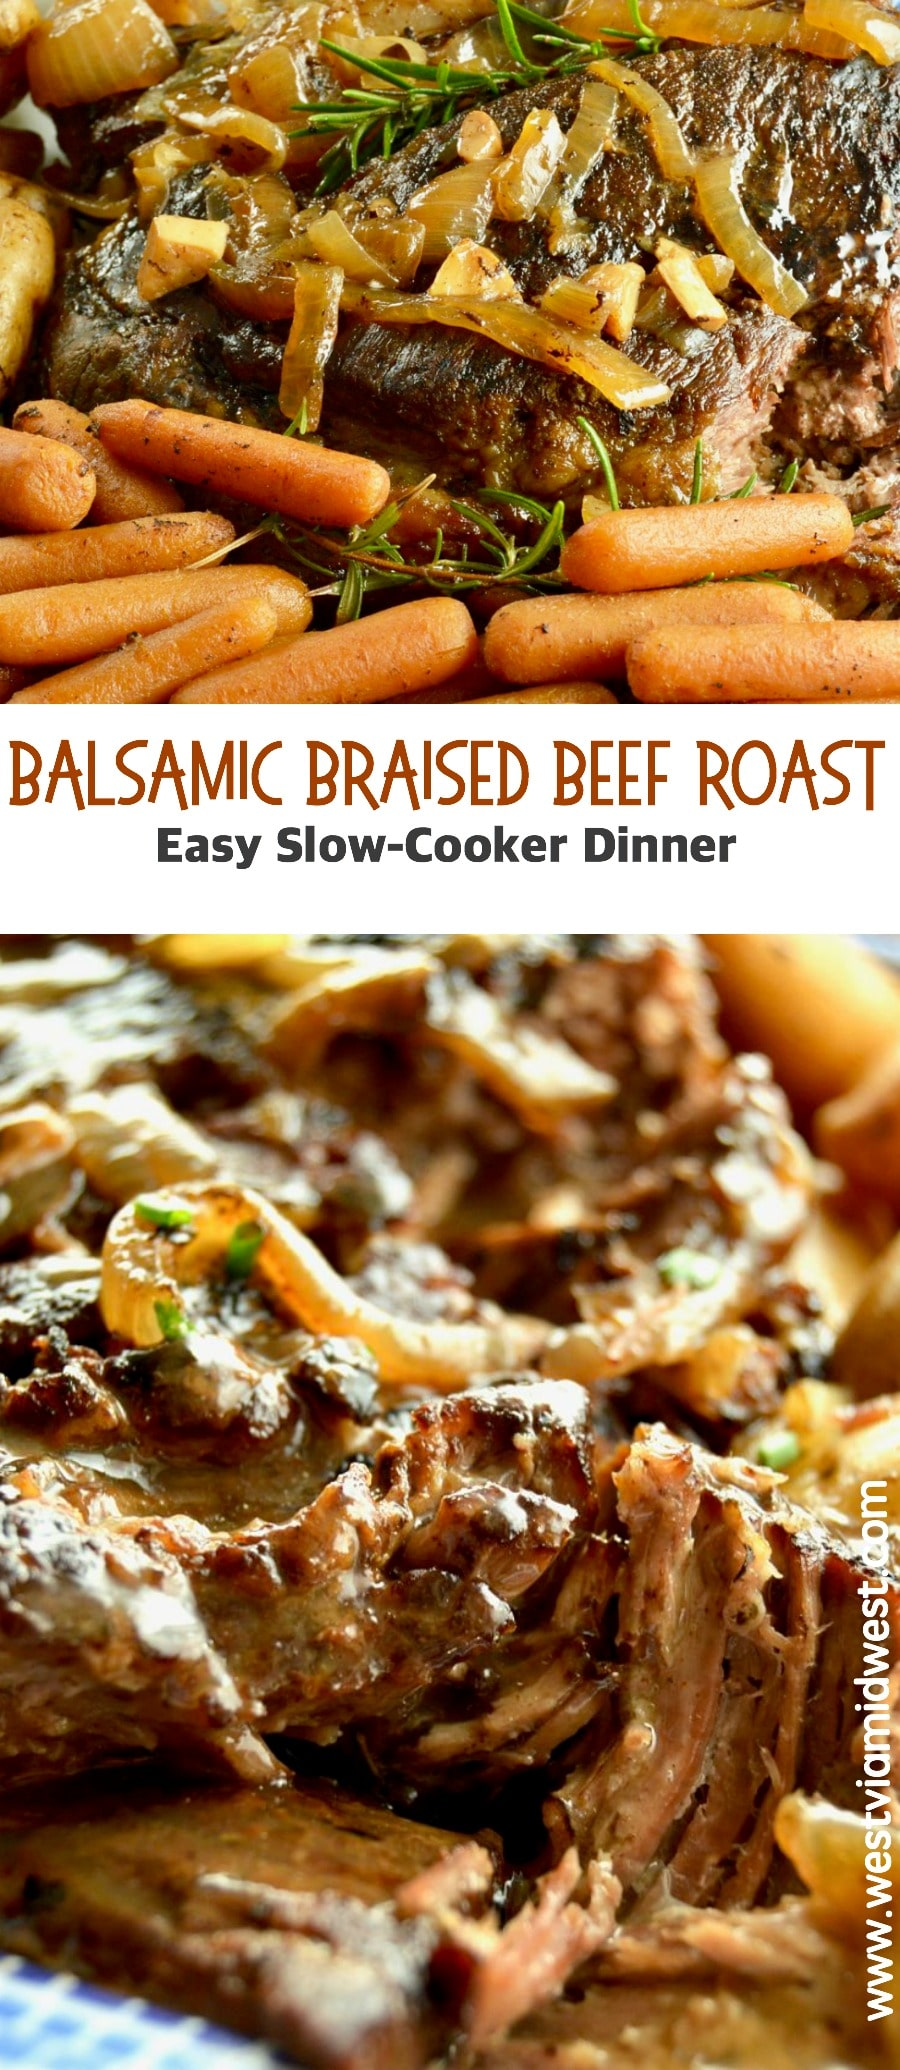 Pull apart tender Balsamic Beef Roast is made in the crock pot for the easiest way to make and serve full flavored meal(carrots & potatoes included) for company without spending hours in the kitchen.